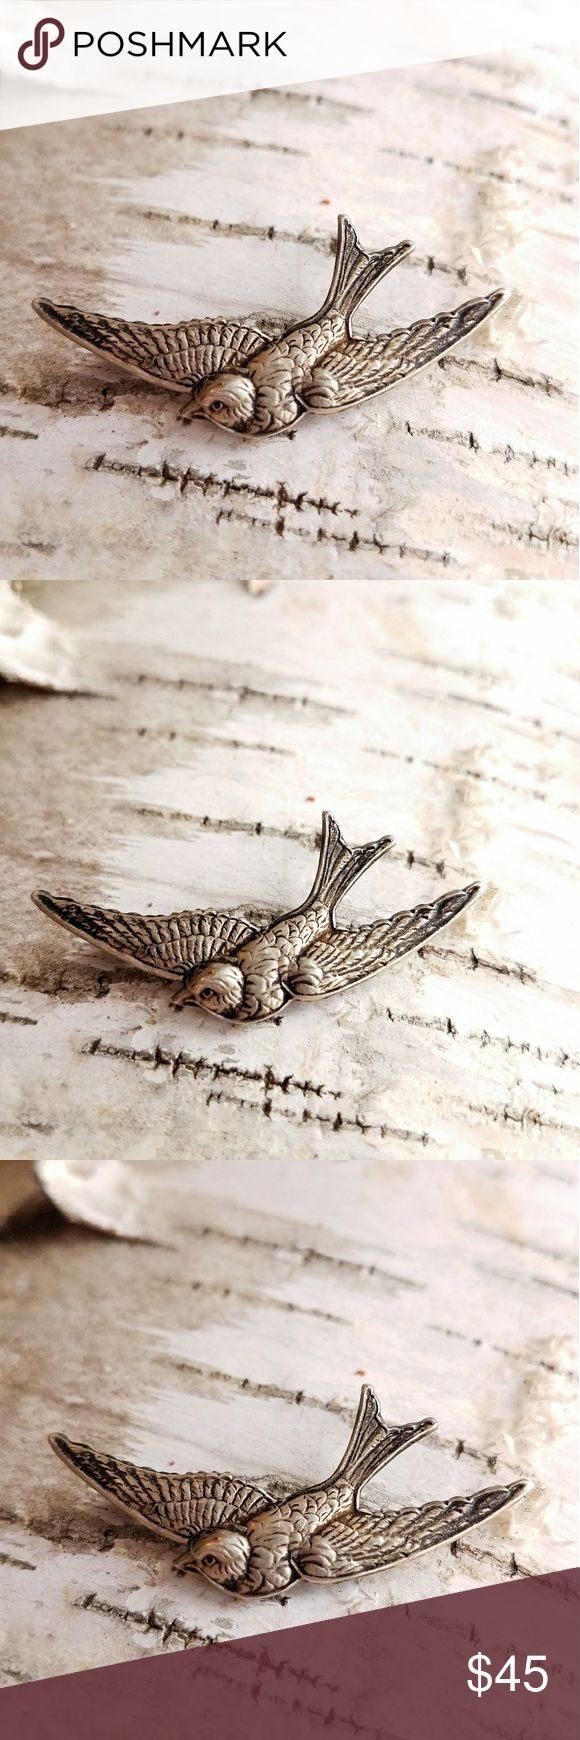 Vintage Sterling bird brooch silver swallow This lovely little vintage brooch is shaped like a bird in flight! It is made of solid Sterling Silver, and is stamped on the back STERLING. This little bird was made around 1940s to 1950s. It is in very nice condition, it does have it's original dark patina. From a smoke free home:)    KeyB8588bird8b4d Vintage Jewelry Brooches